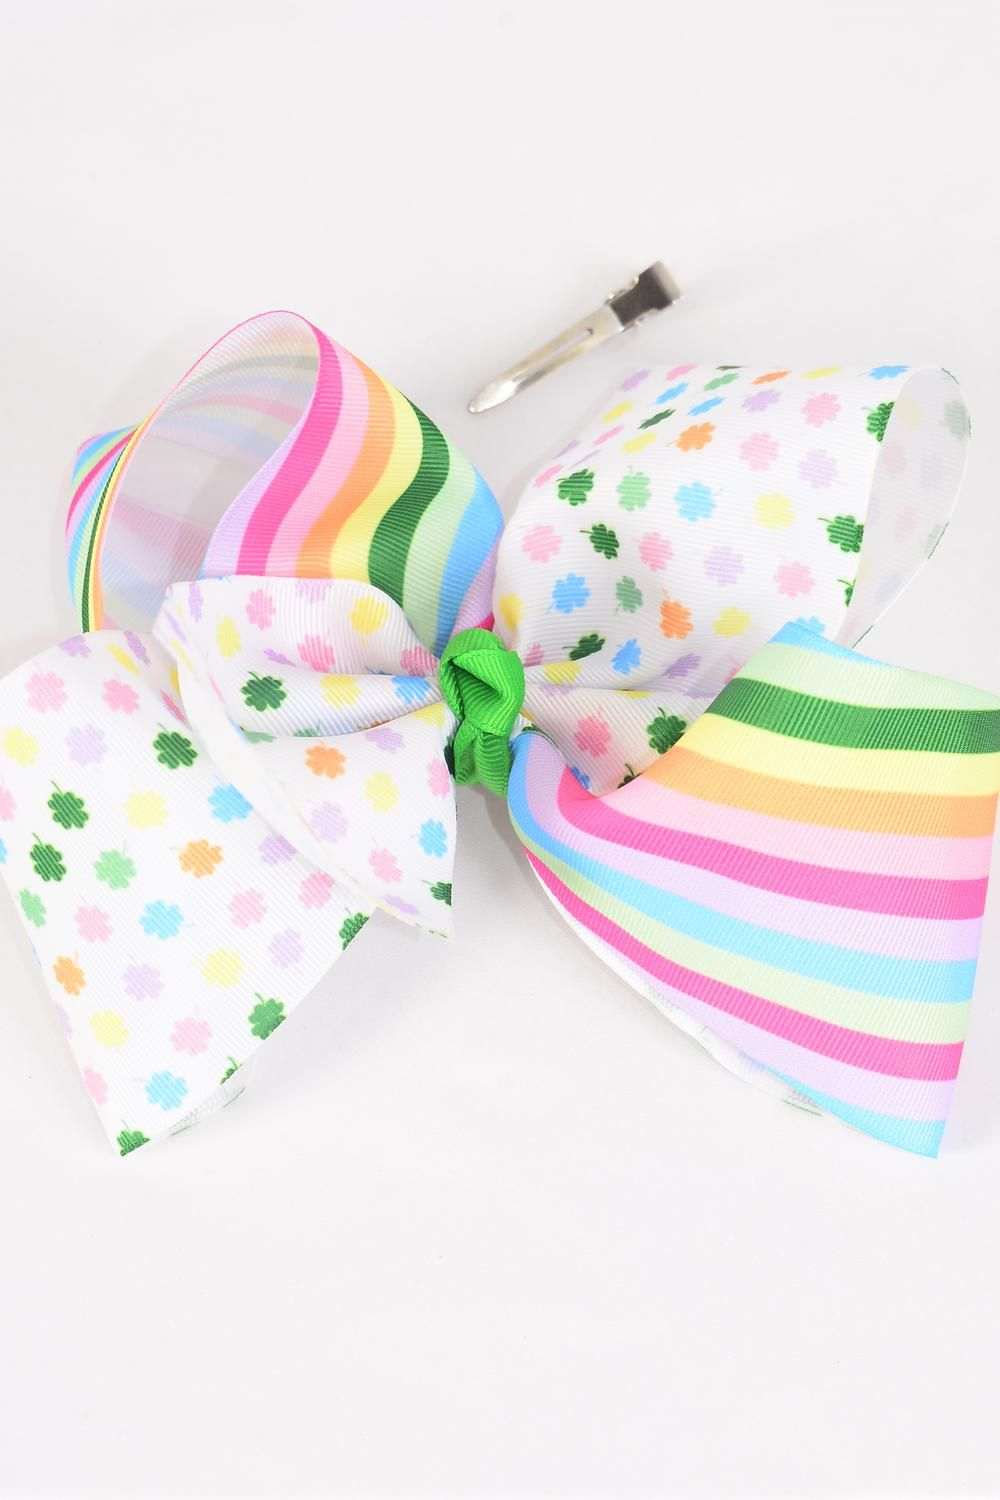 "Hair Bow Jumbo Cheer Type Bow Multi Clover & Stripes Grosgrain Bow-tie/DZ **Alligator Clip** Size-8""x 7"" Wide,Clip Strip & UPC Code"